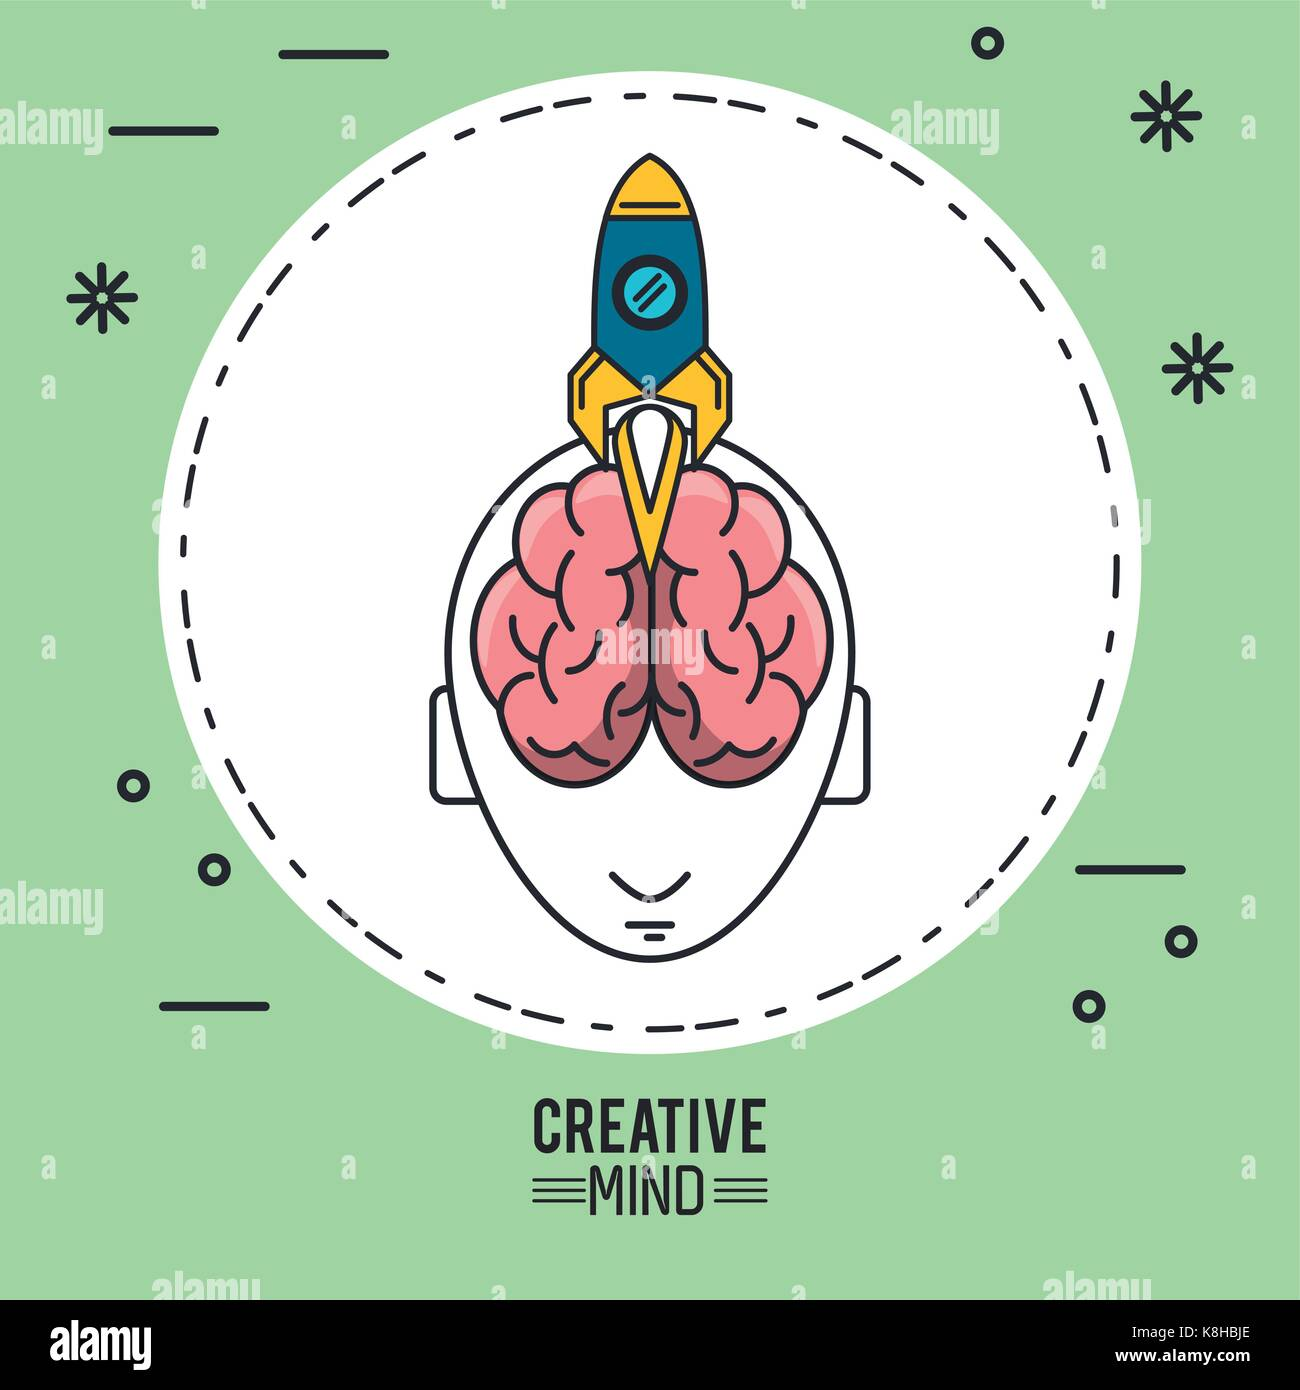 managing creative minds